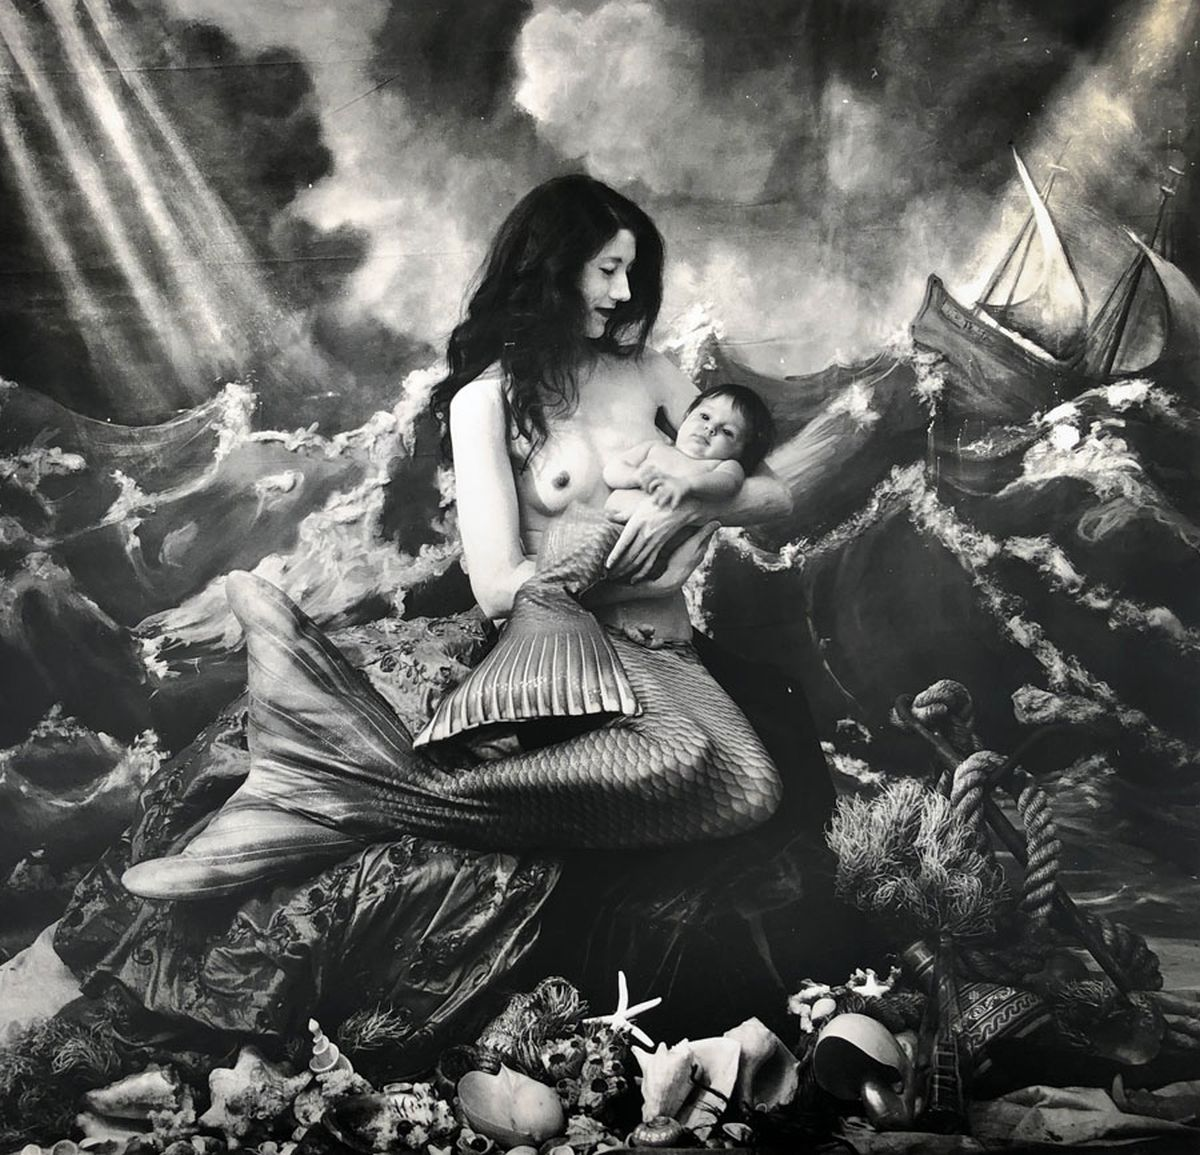 "Joel-Peter Witkin, A Mermaid's Tale, NM, 2018  From the Photographic Works series  16 x 20"" gelatin silver print Edition of 15 + 3 AP's"